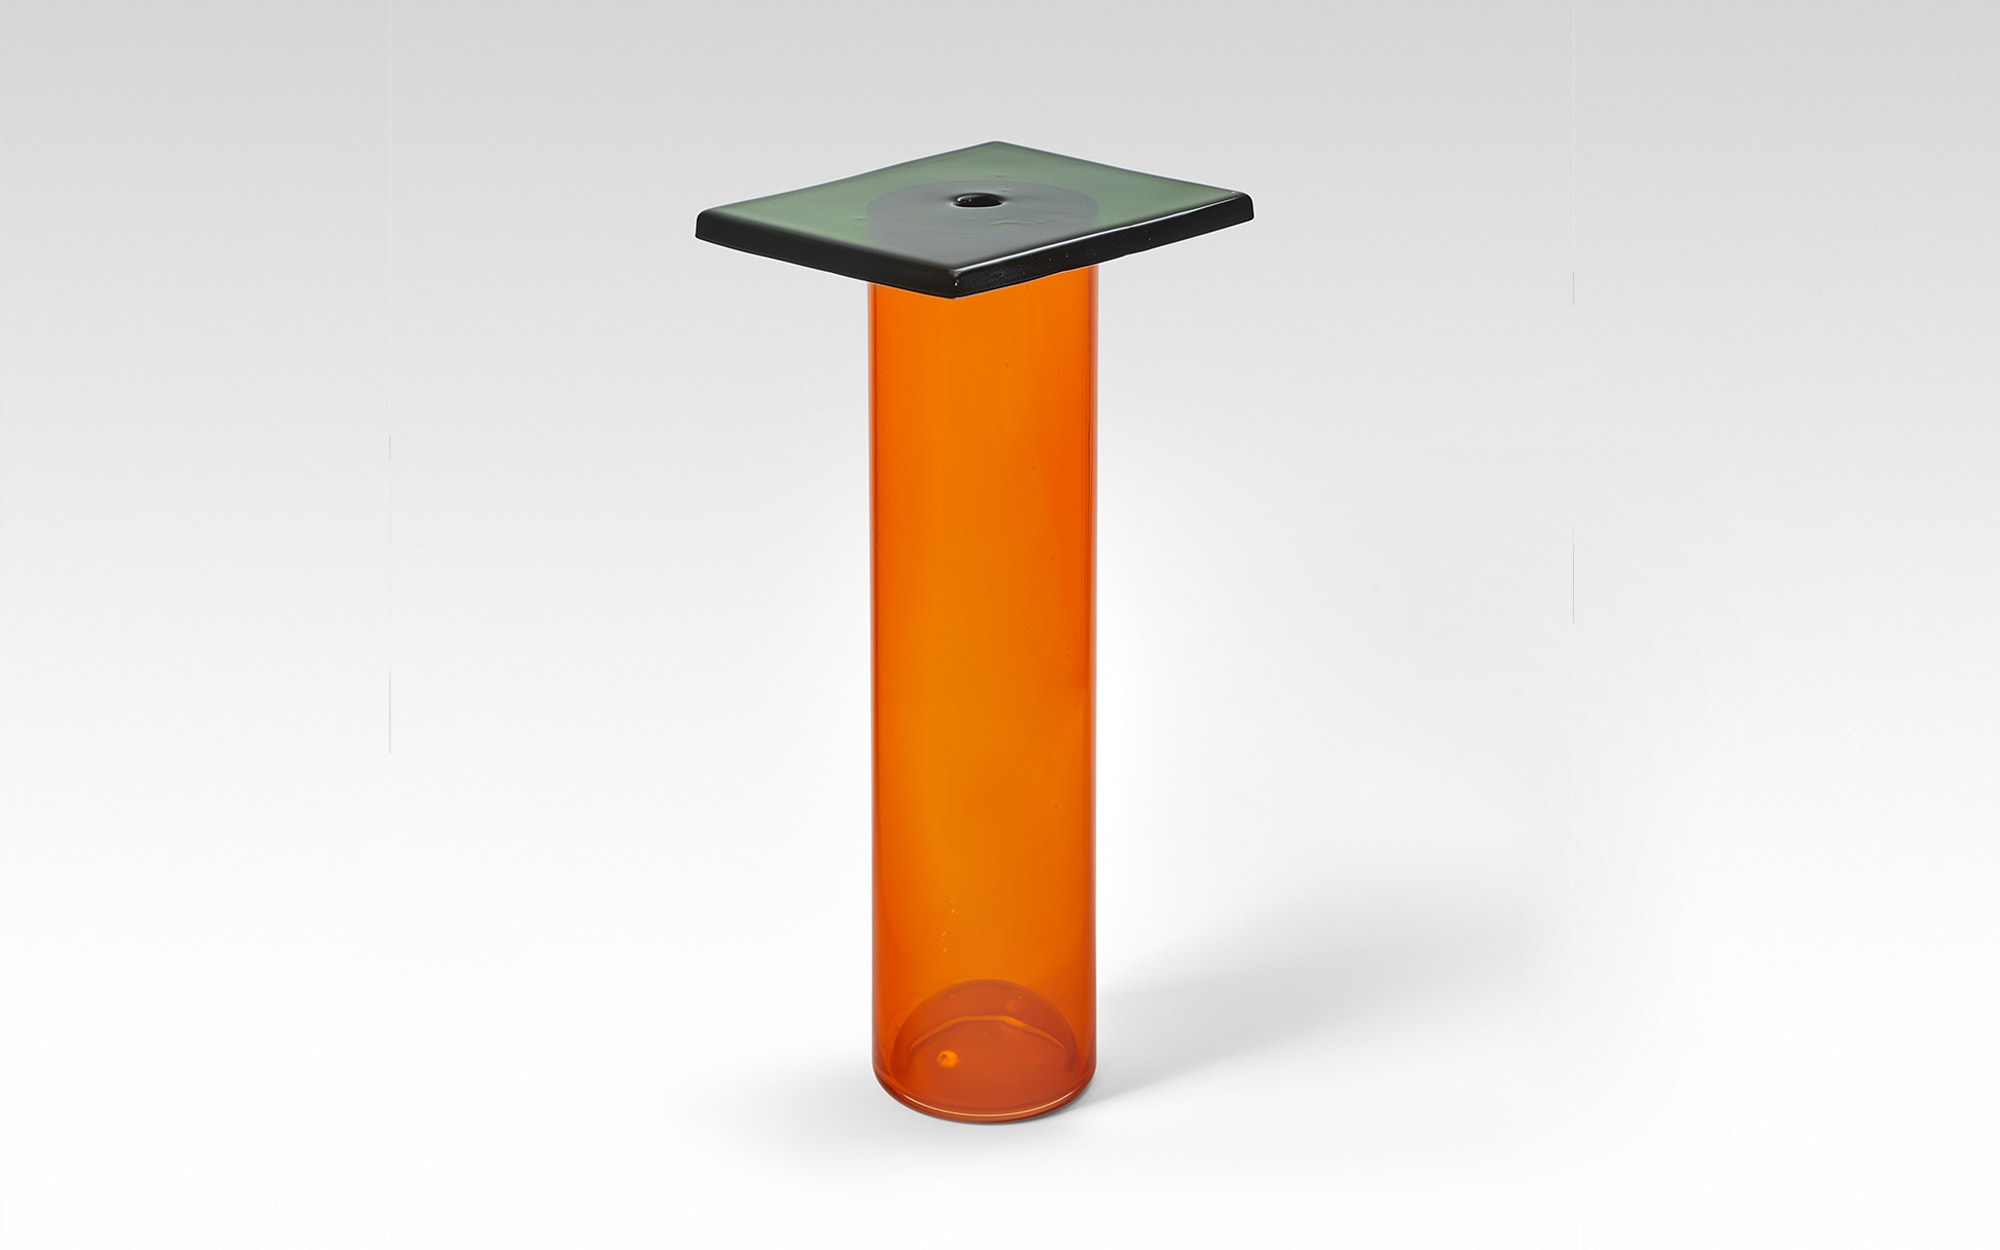 Pierre Charpin Vase Dalle (Orange Tube/ Green Flagstone)